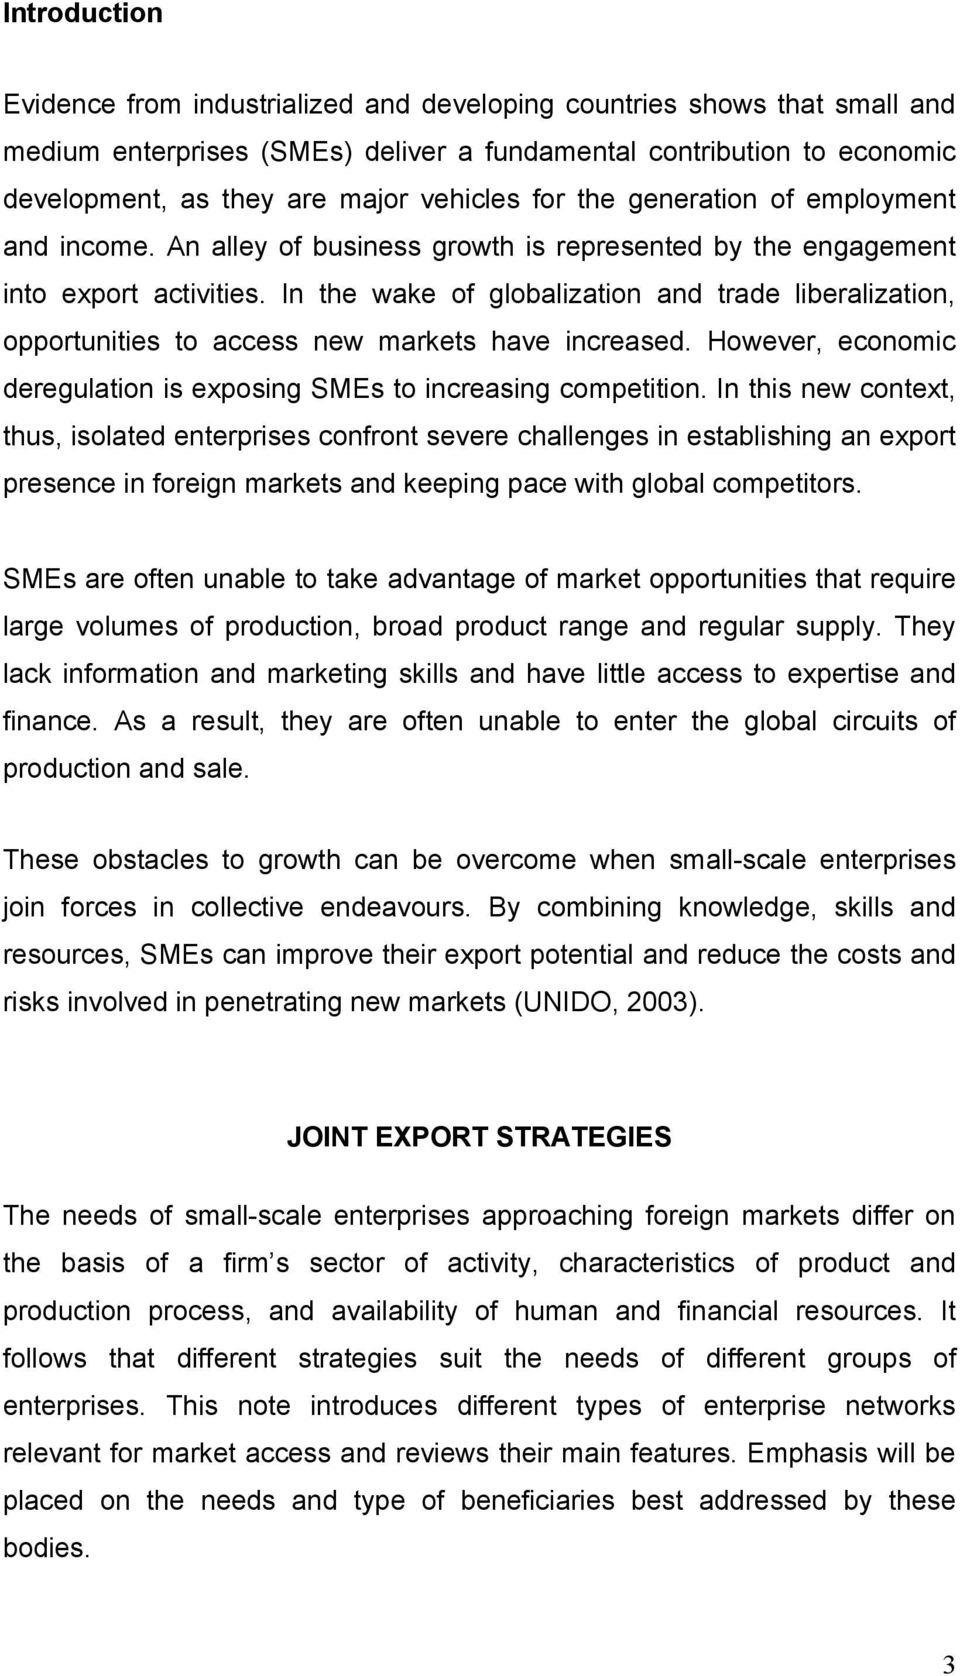 In the wake of globalization and trade liberalization, opportunities to access new markets have increased. However, economic deregulation is exposing SMEs to increasing competition.